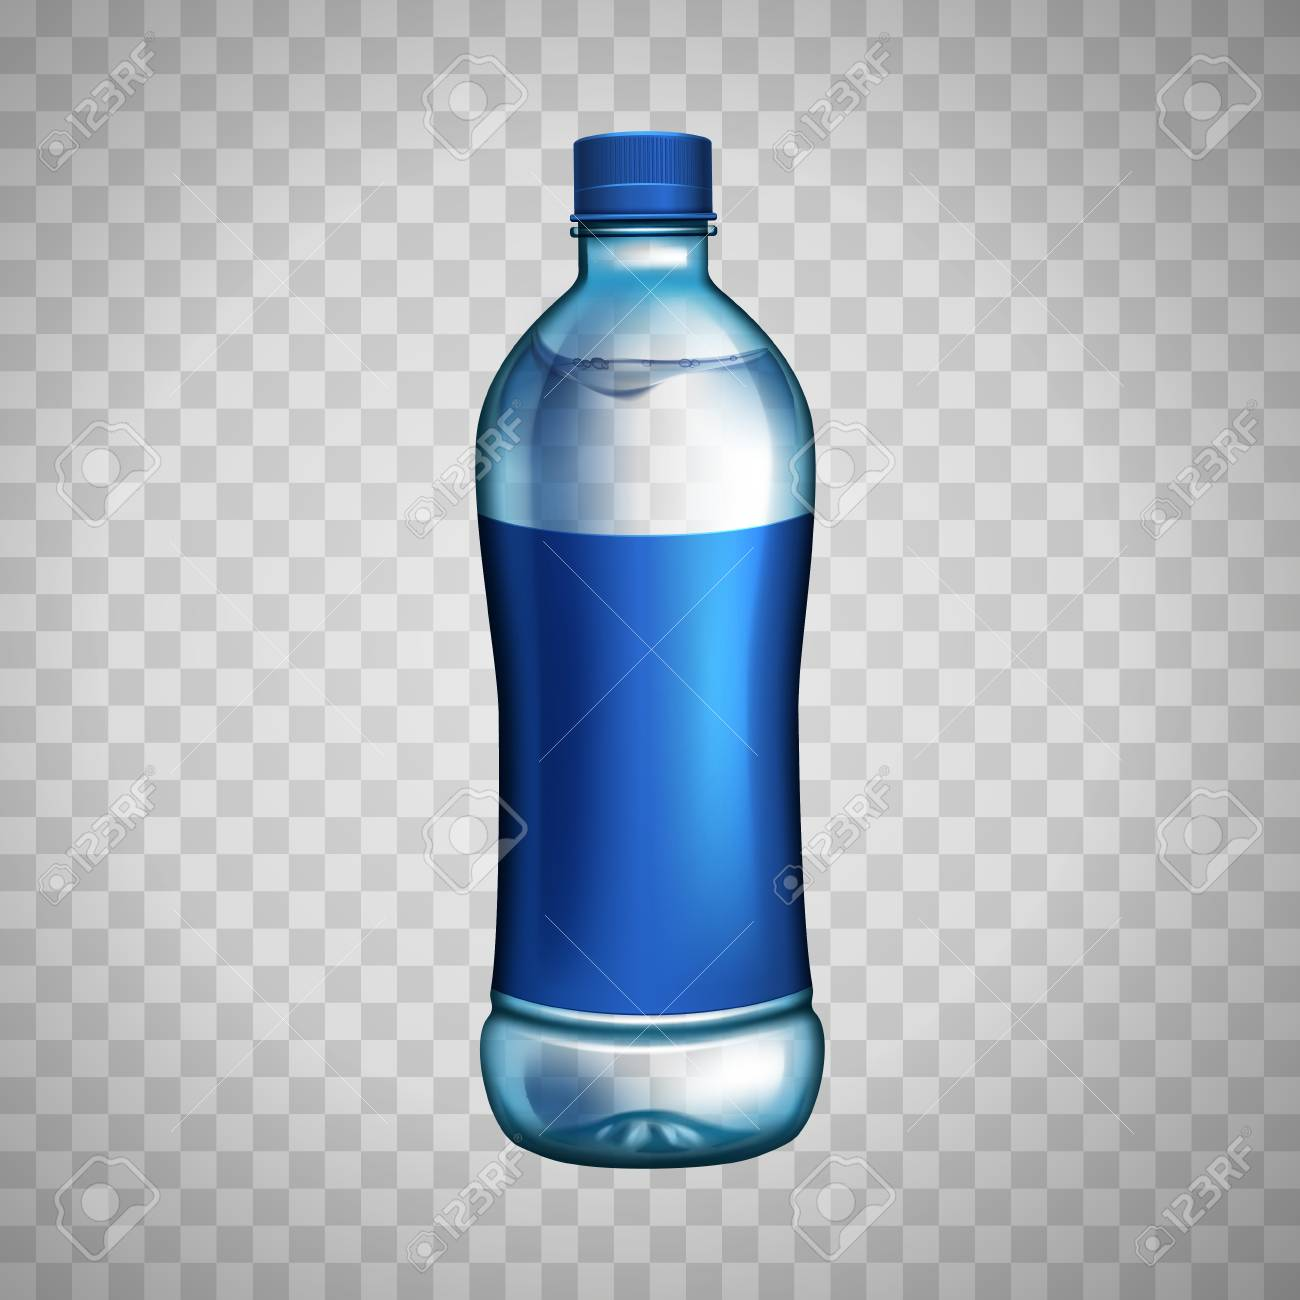 1388 Water Bottle free clipart.